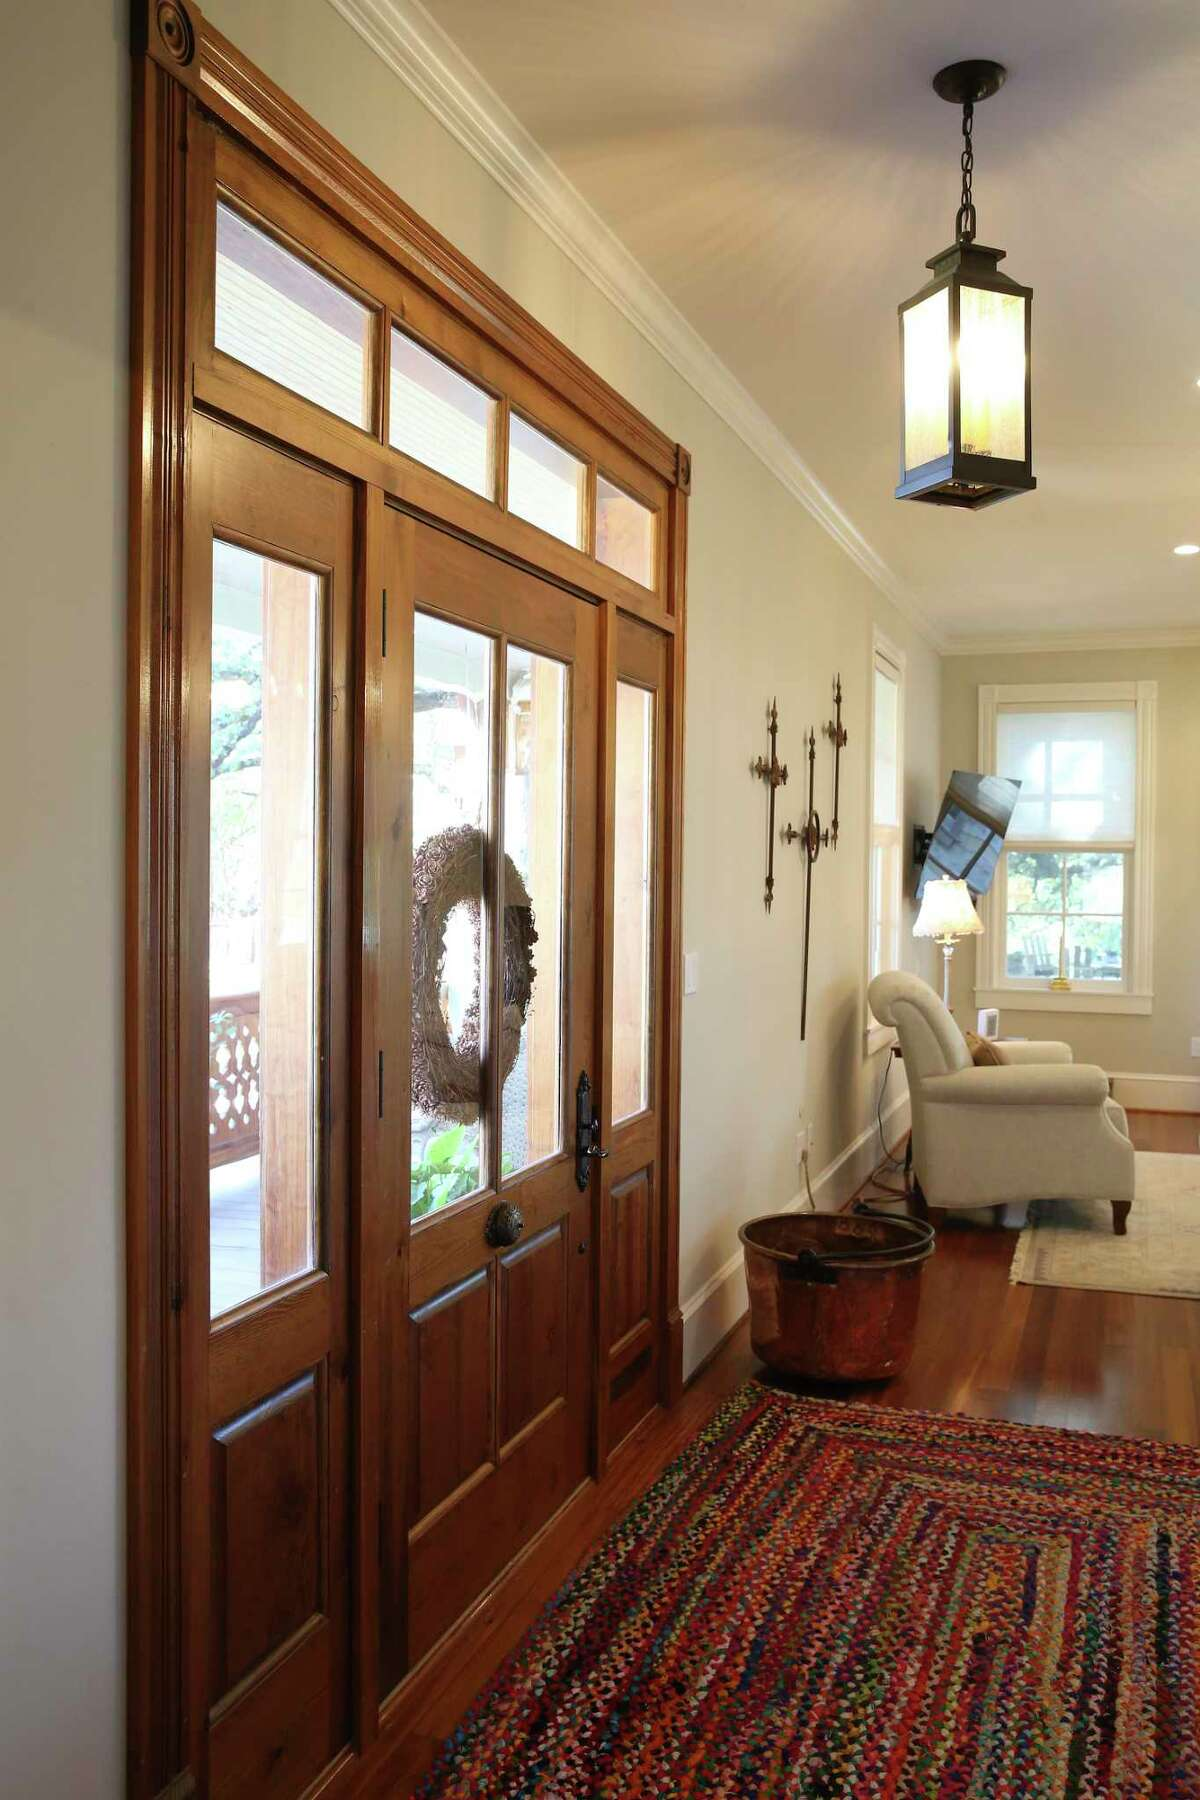 The front door, trim and flooring are made from reclaimed longleaf pine.